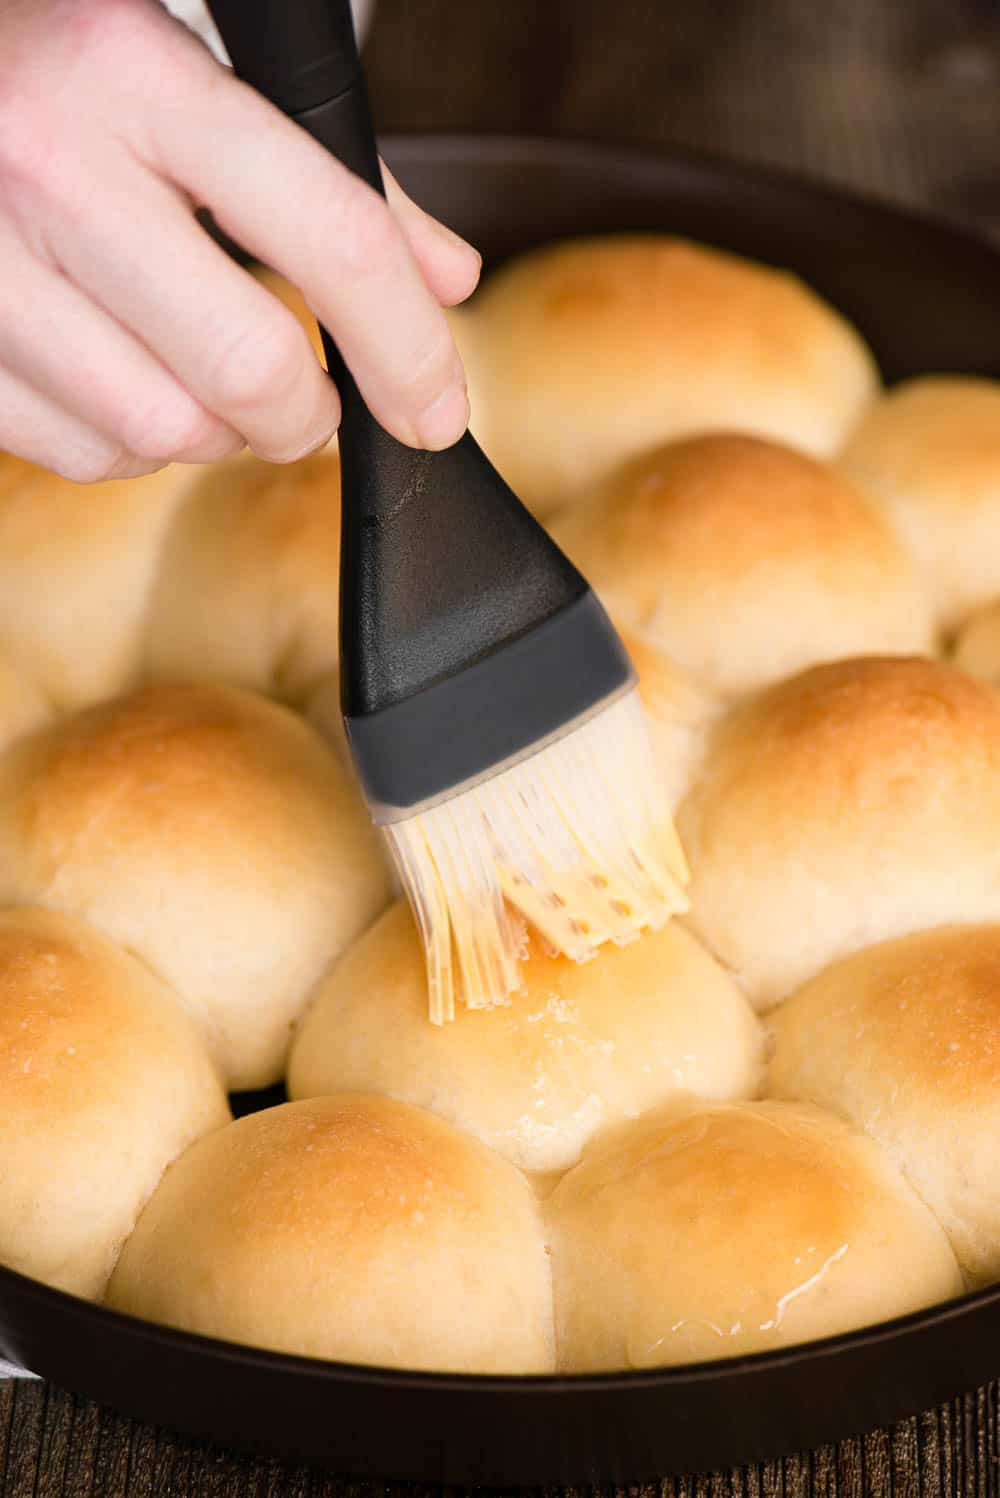 spreading melted butter on yeast bread rolls